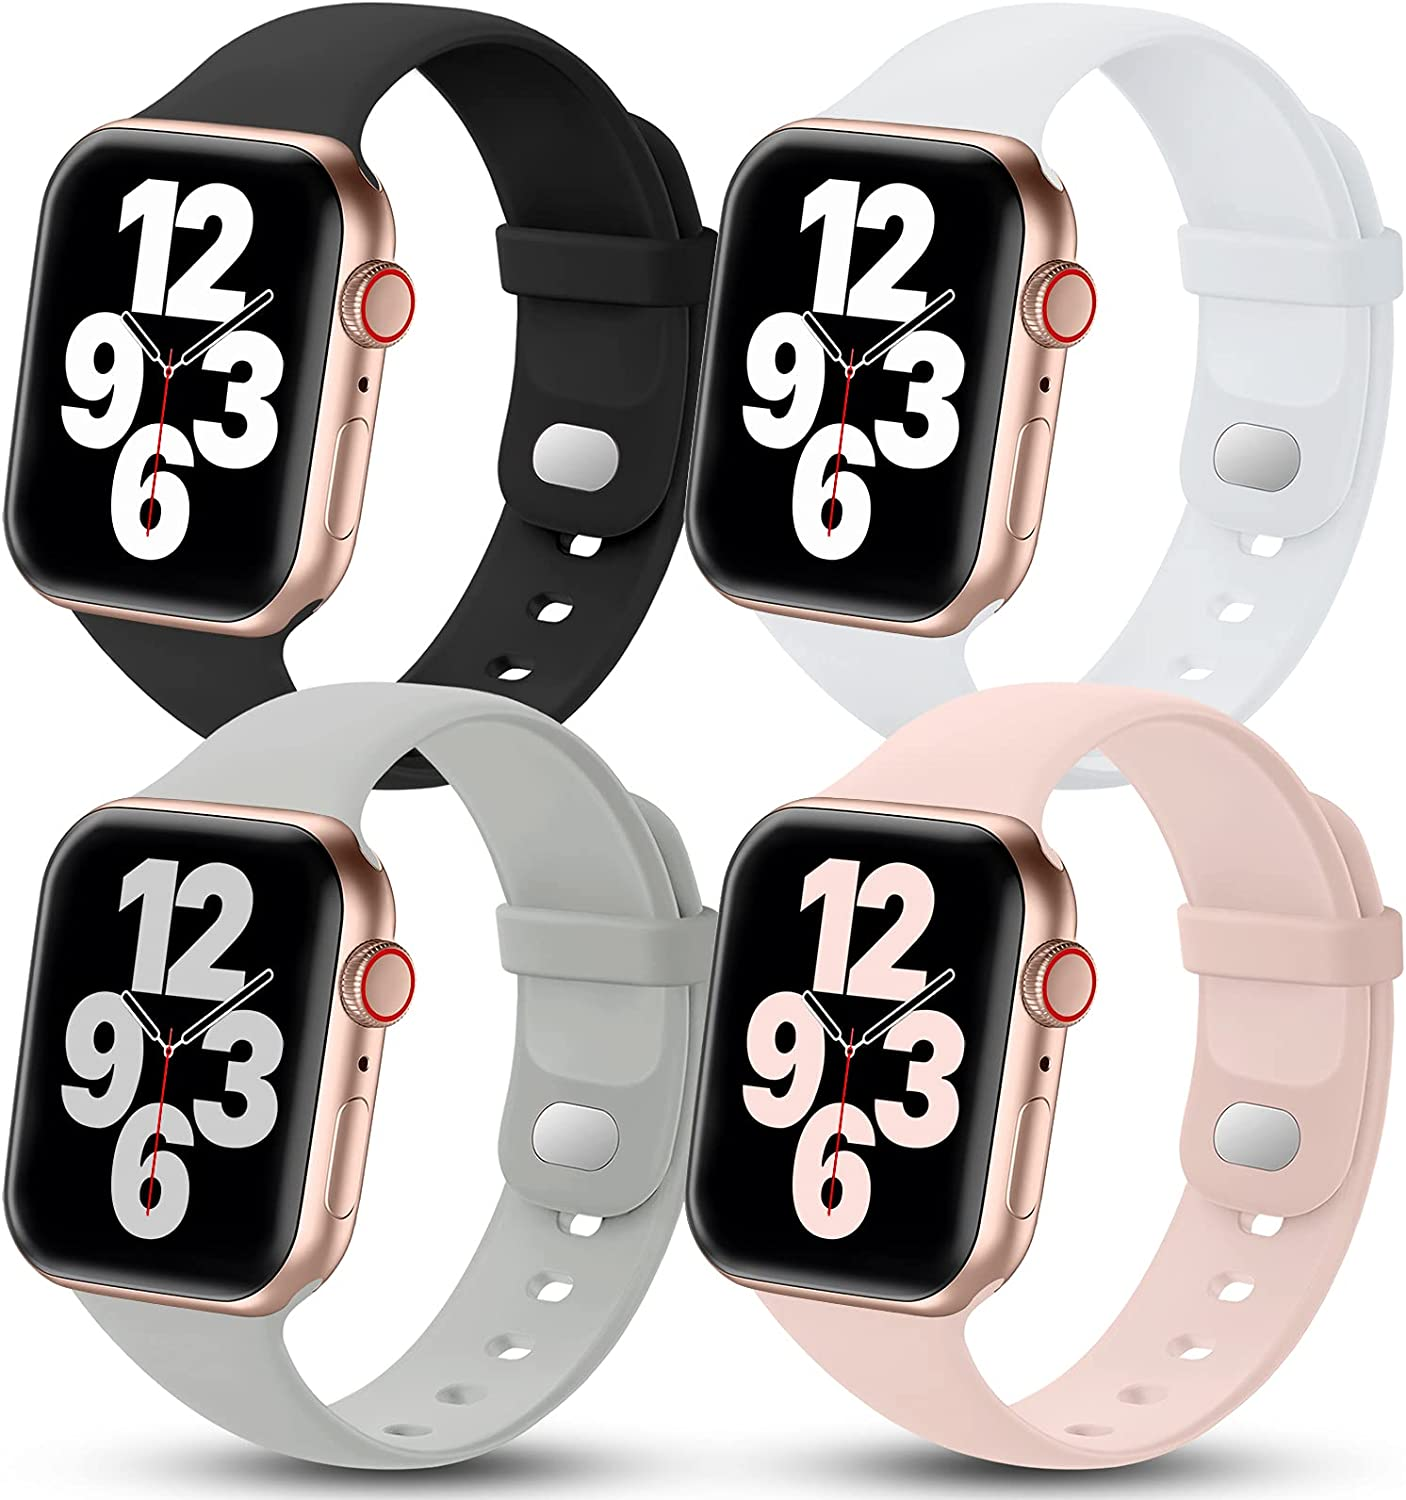 4 Pack GEAK Compatible with Apple Watch Band 40mm, iWatch 38mm Bands Womens, Soft Sport Silicone Replacement Strap for iWatch Series SE 6 5 4 3 2 1, Black/Pink/White/Gray